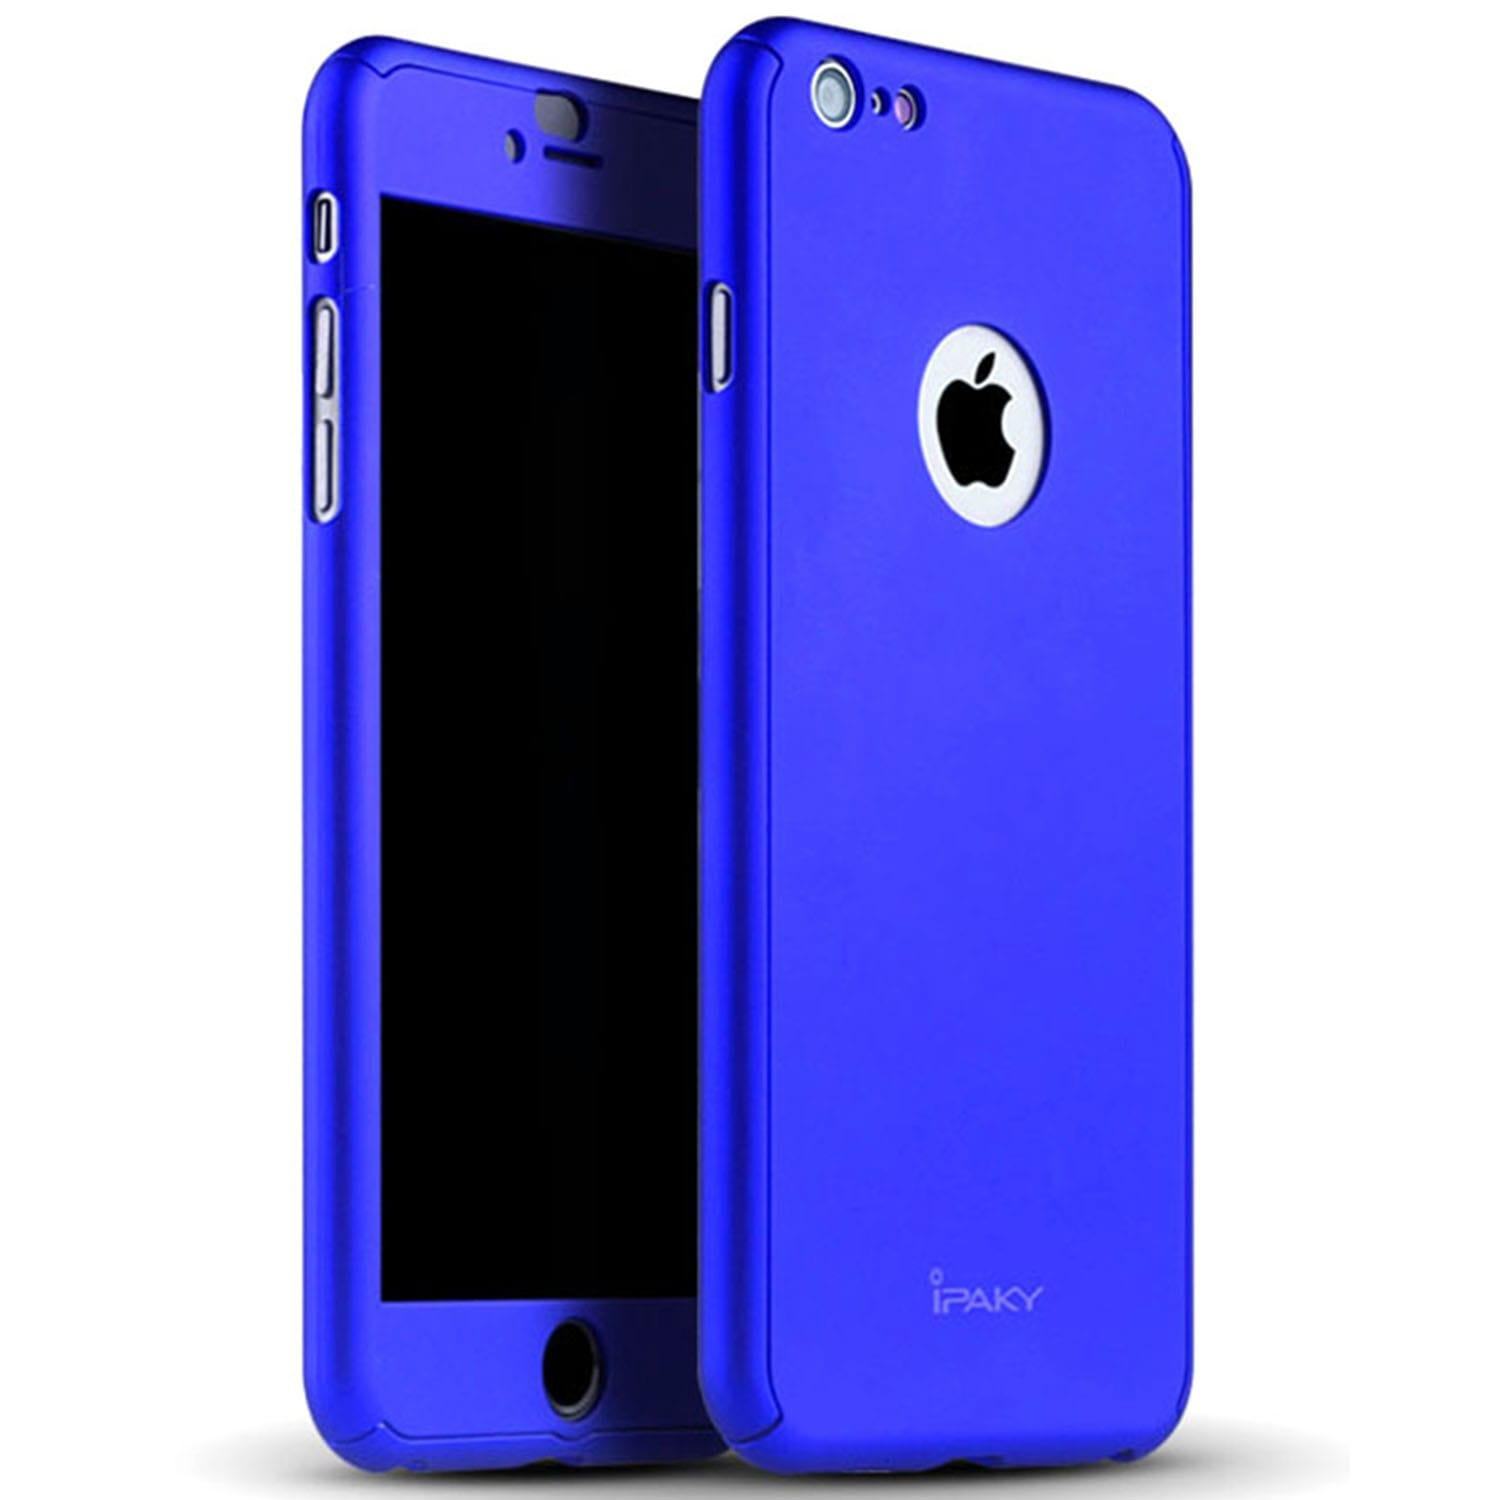 Back Cover For Apple iPhone 6 Plus - Blue